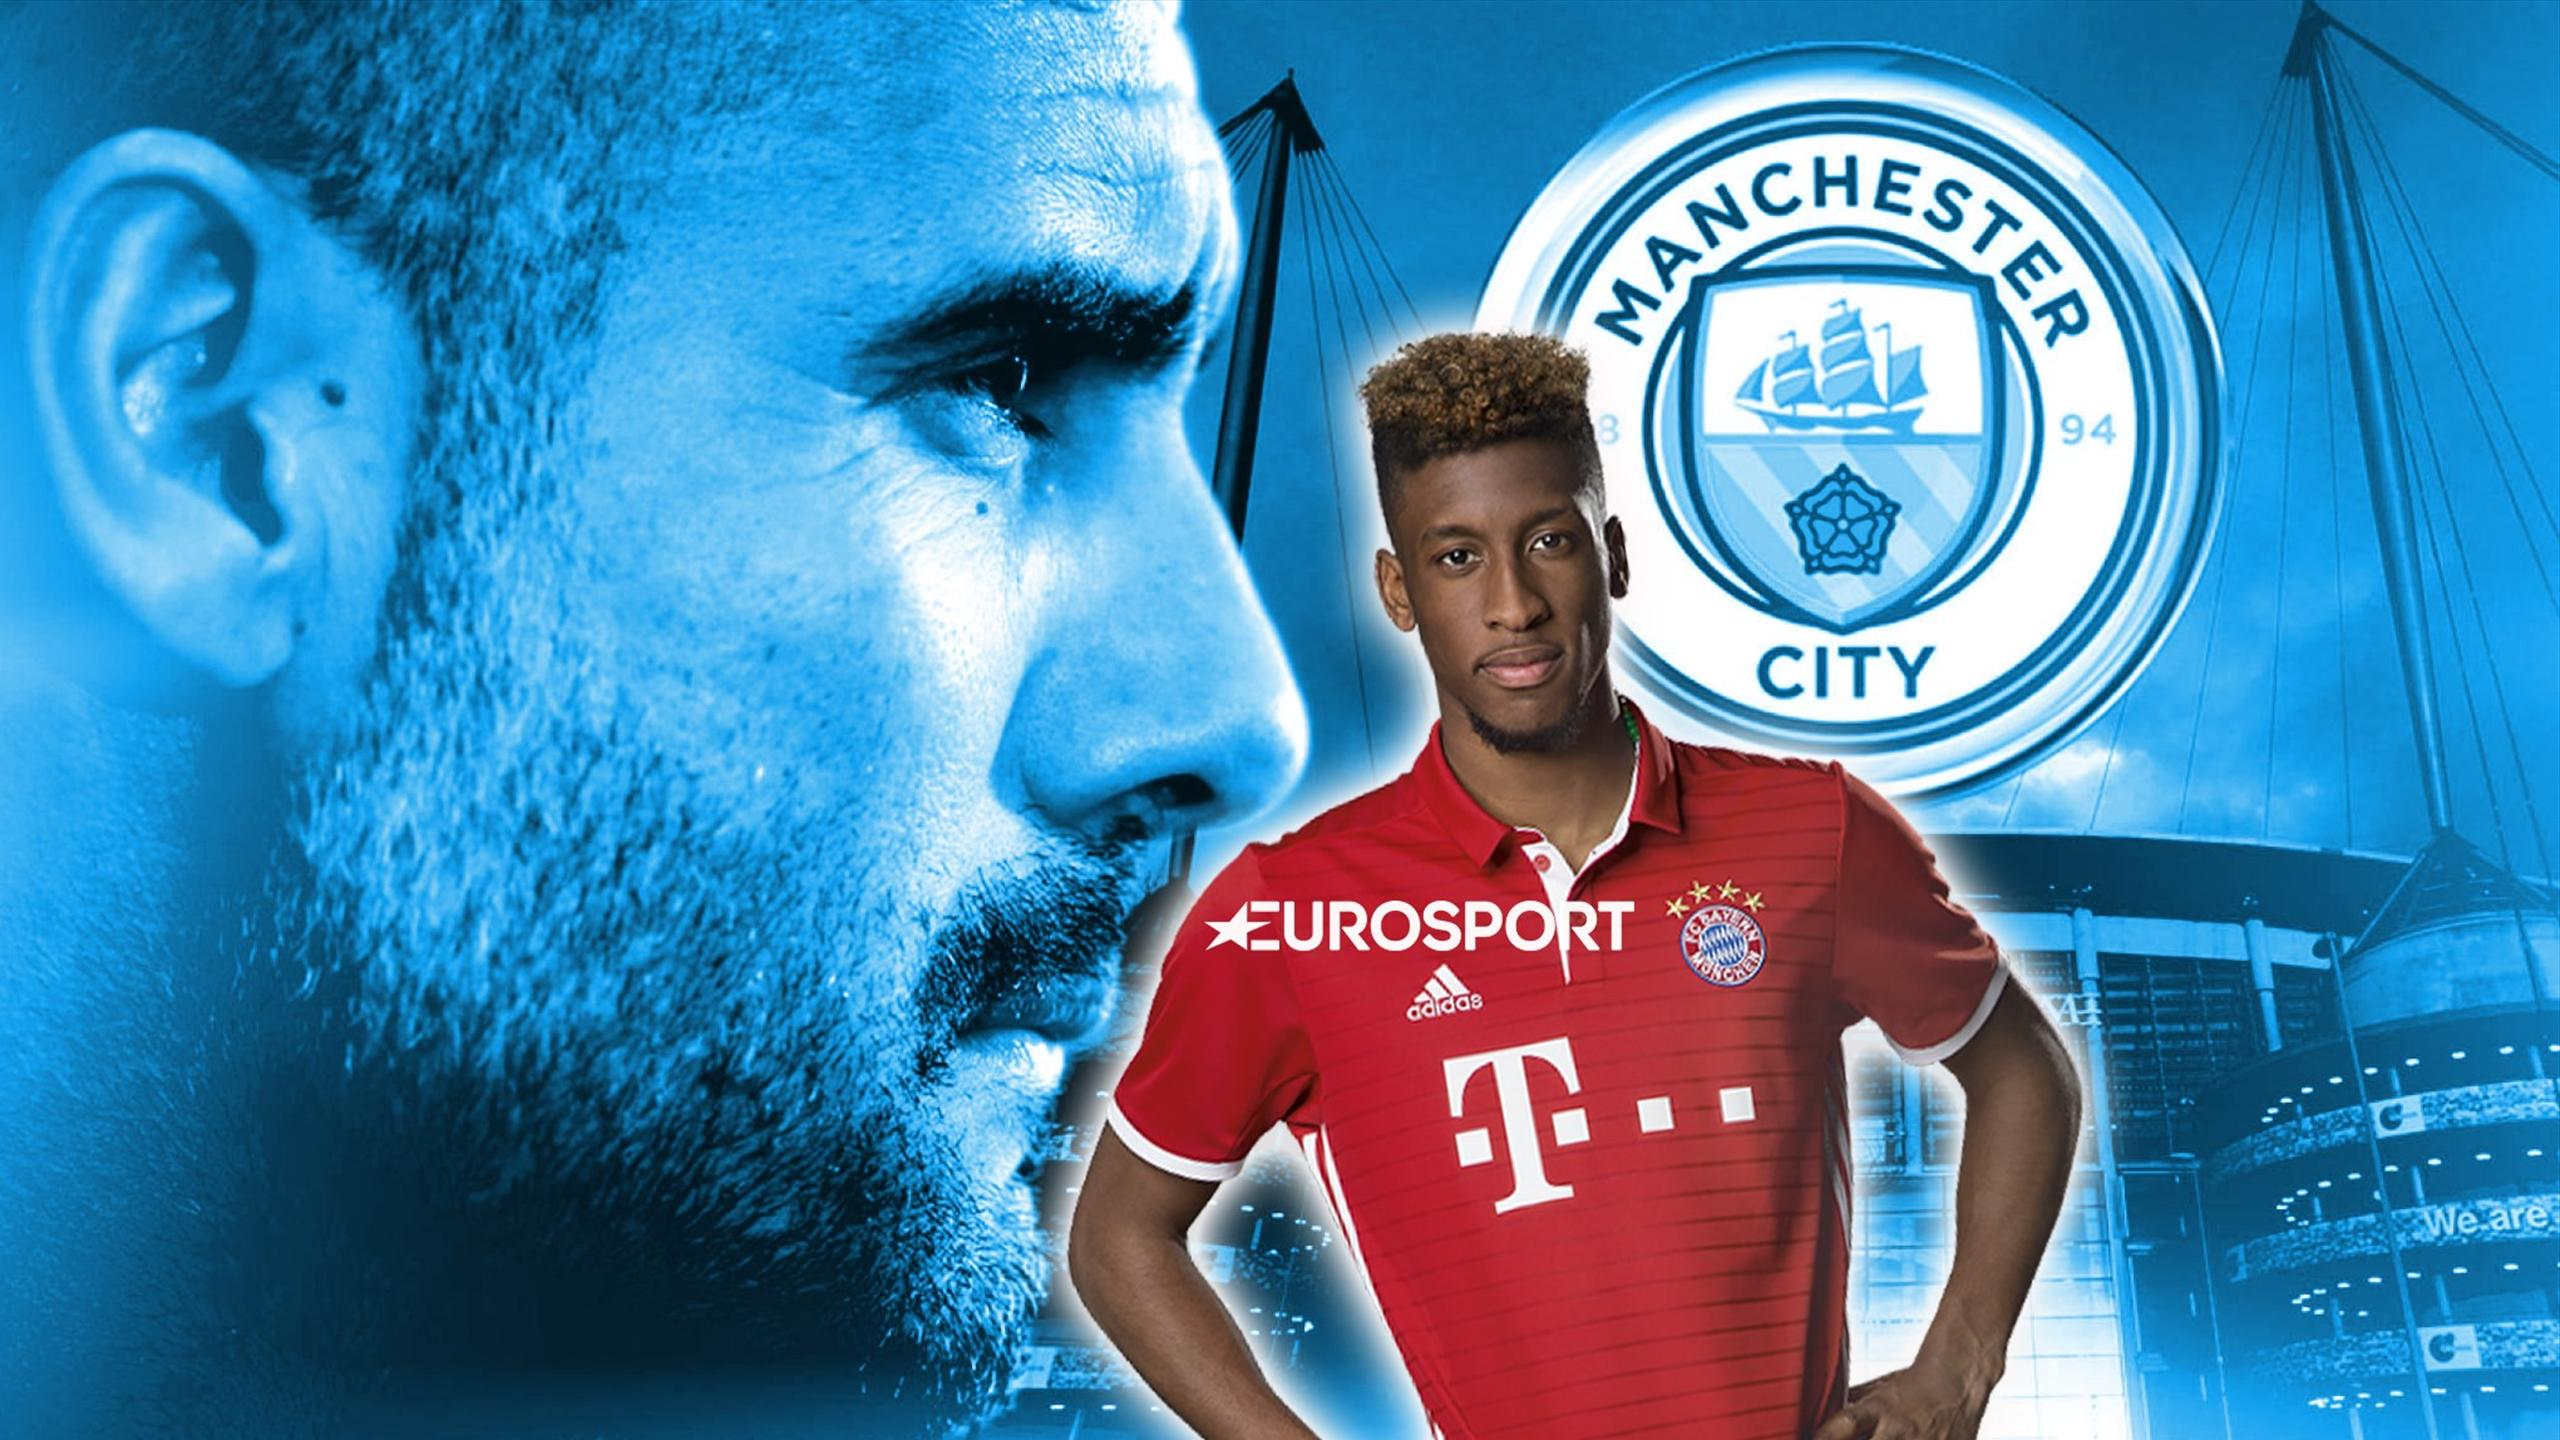 City to clinch Kingsley Coman transfer in 2017 - Euro Papers